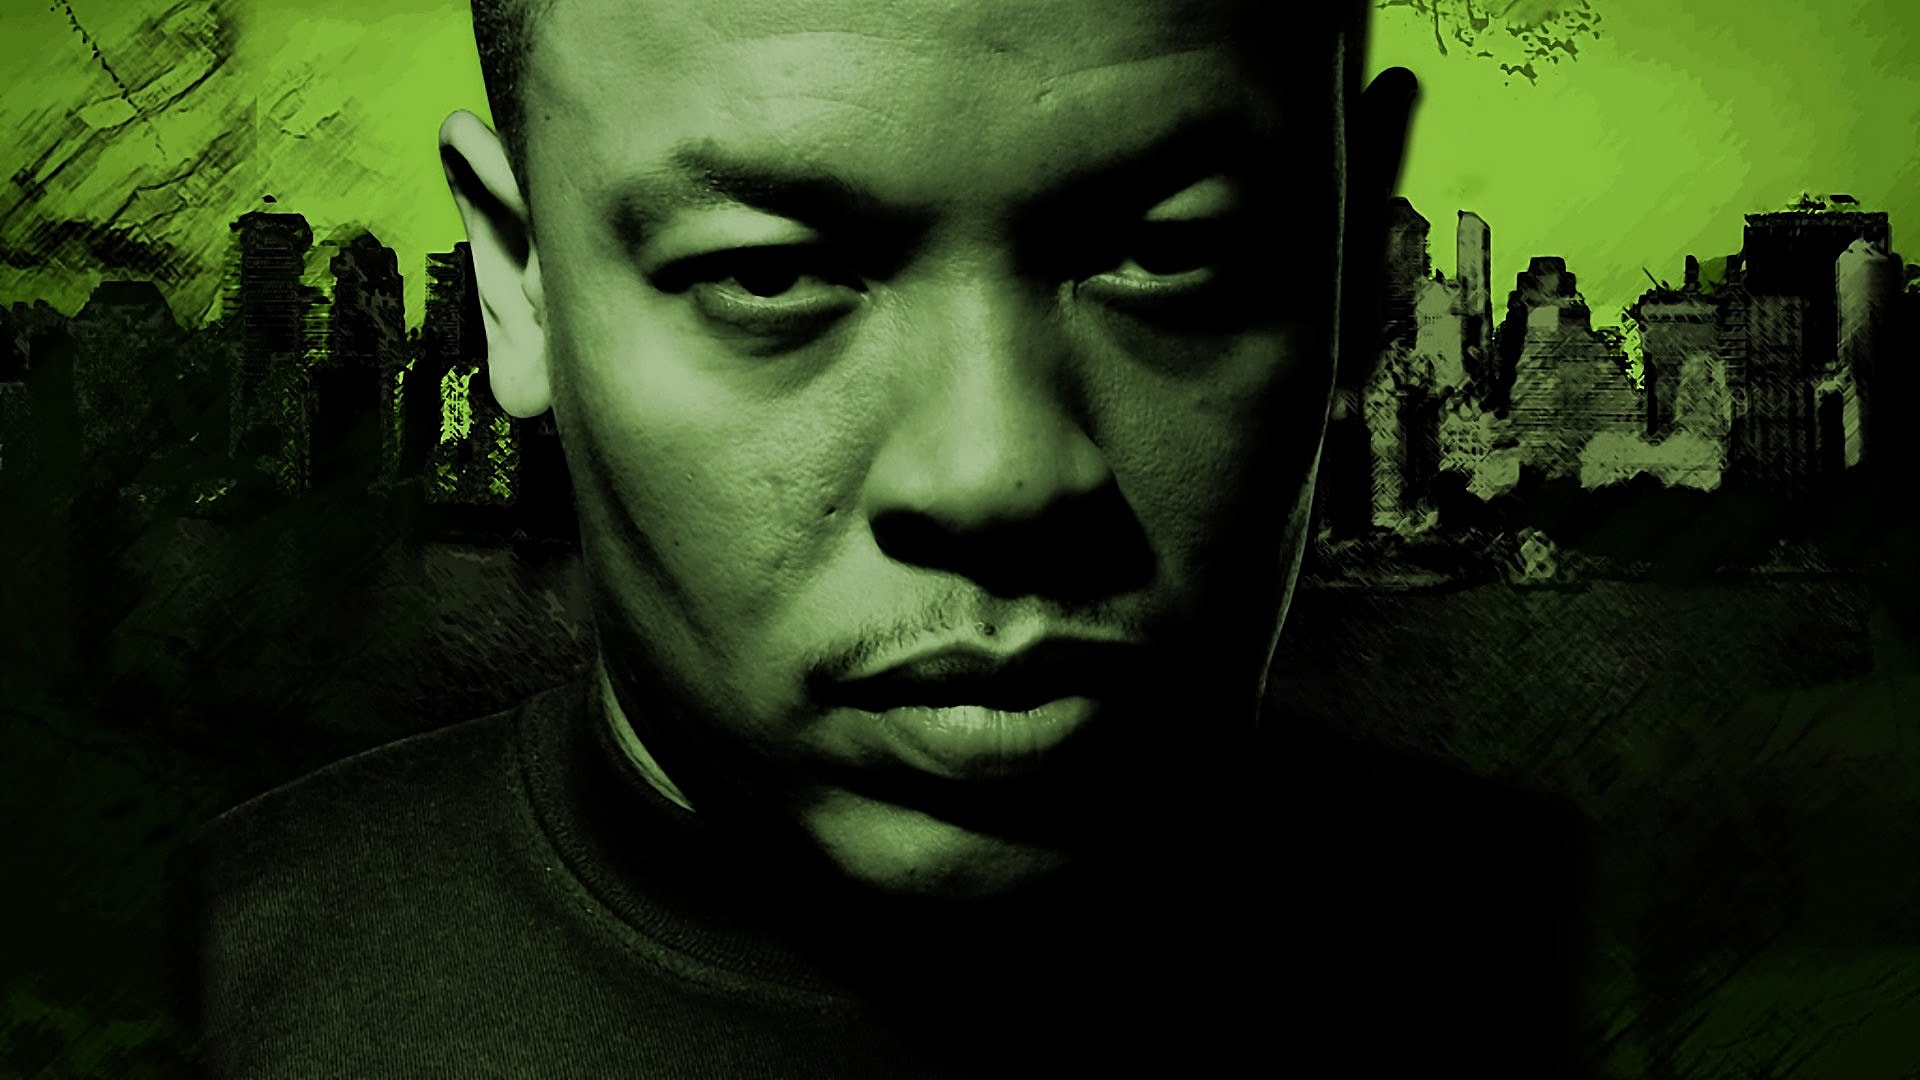 Dr. Dre Backgrounds